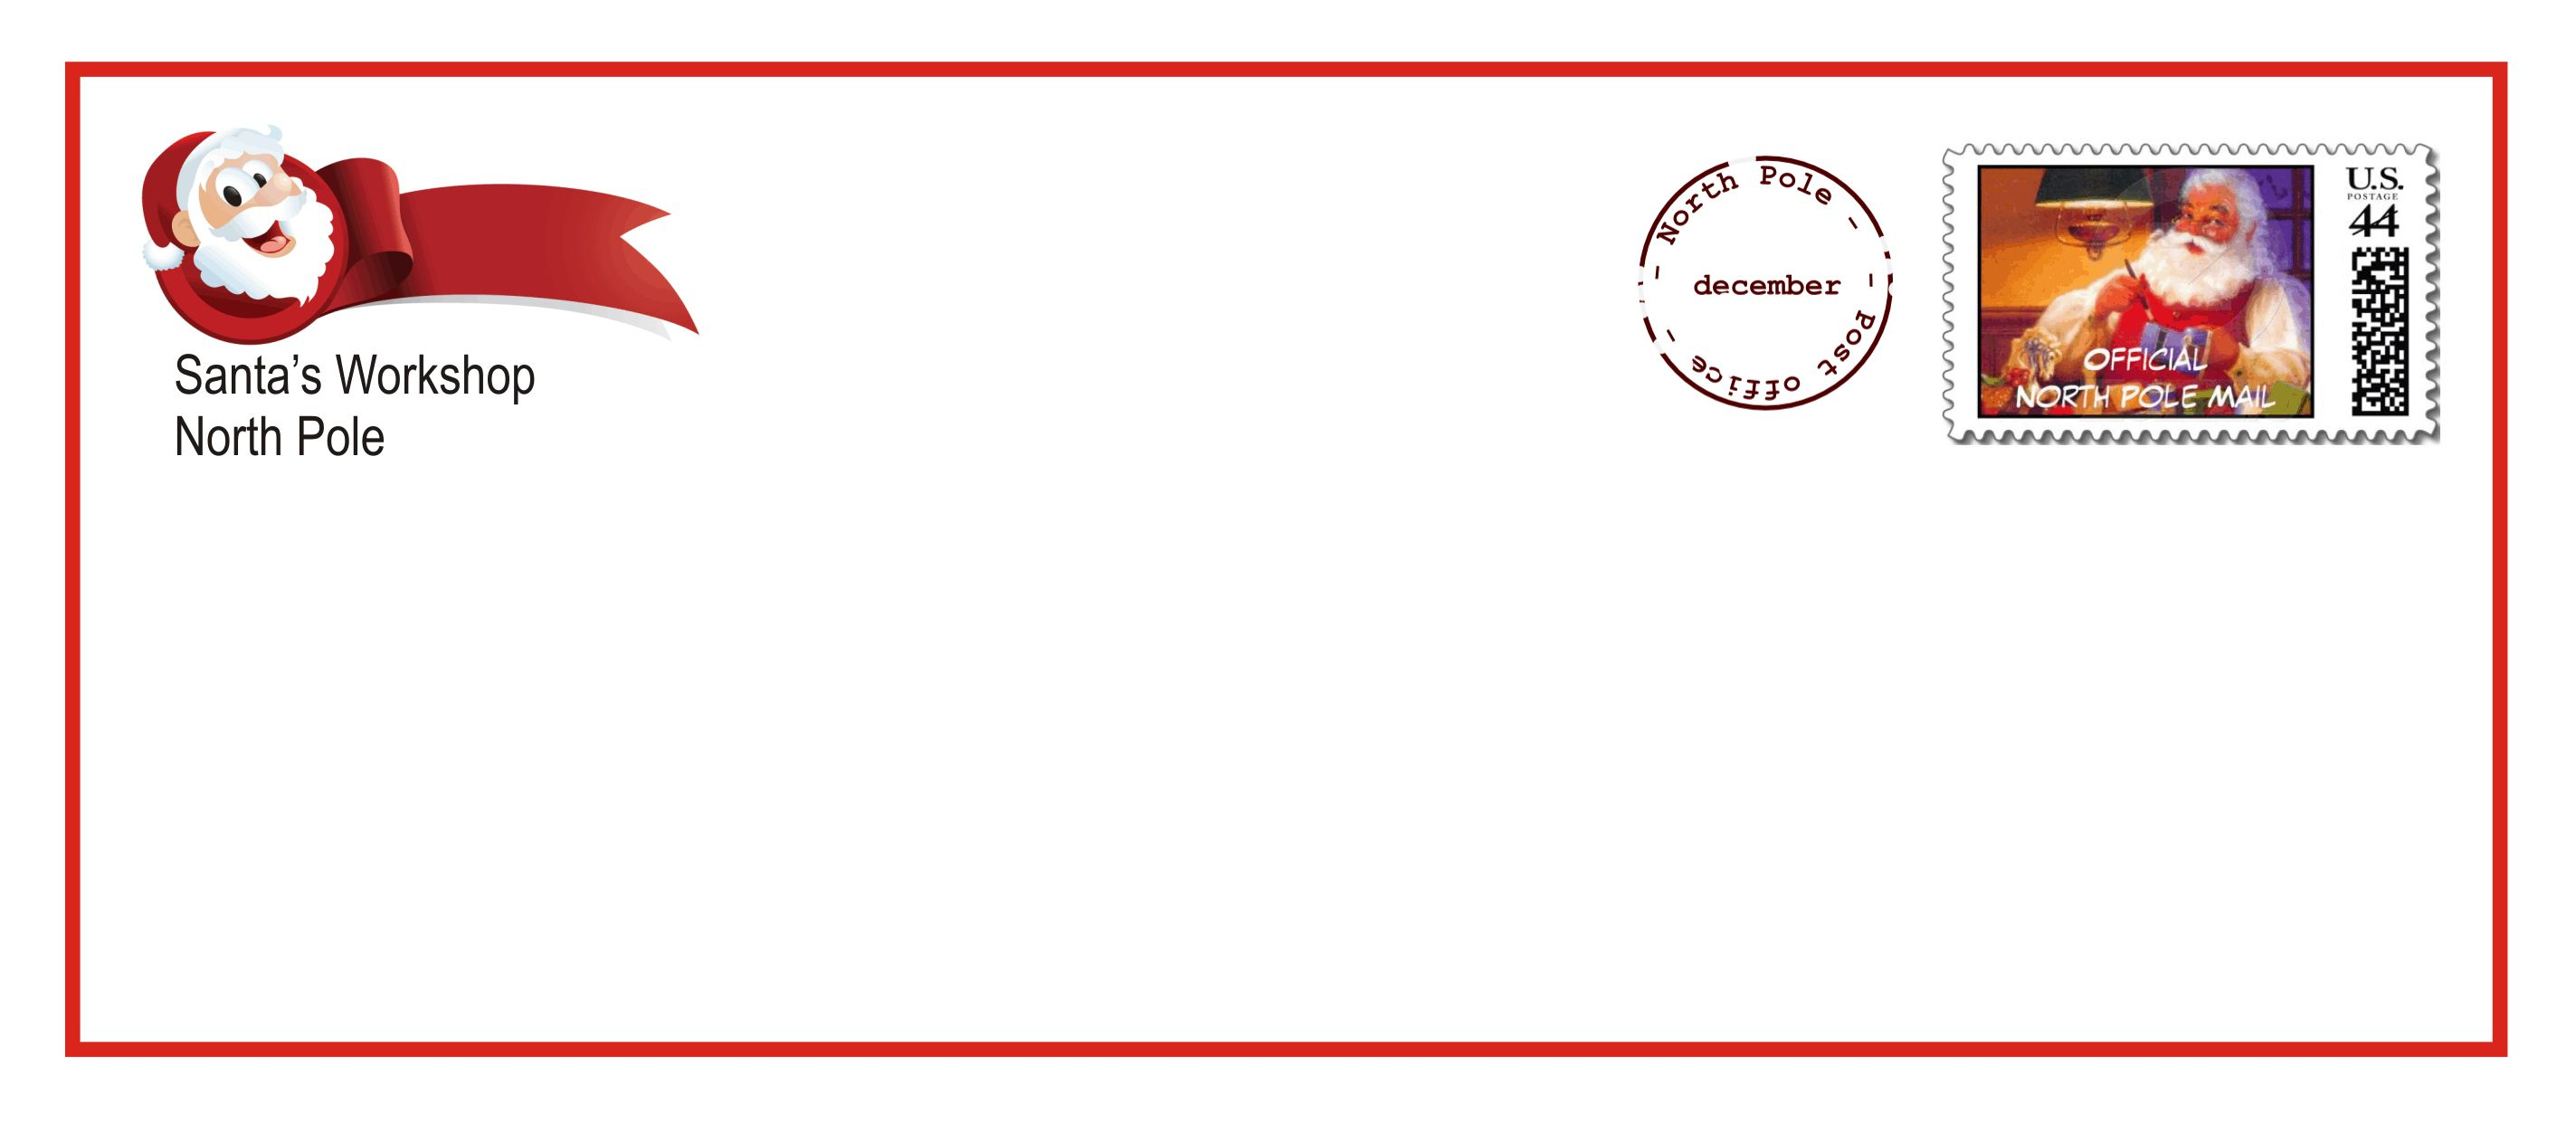 Santa Claus Letter Template - Printable Santa Letter Envelopes that E with the Upgraded Letter